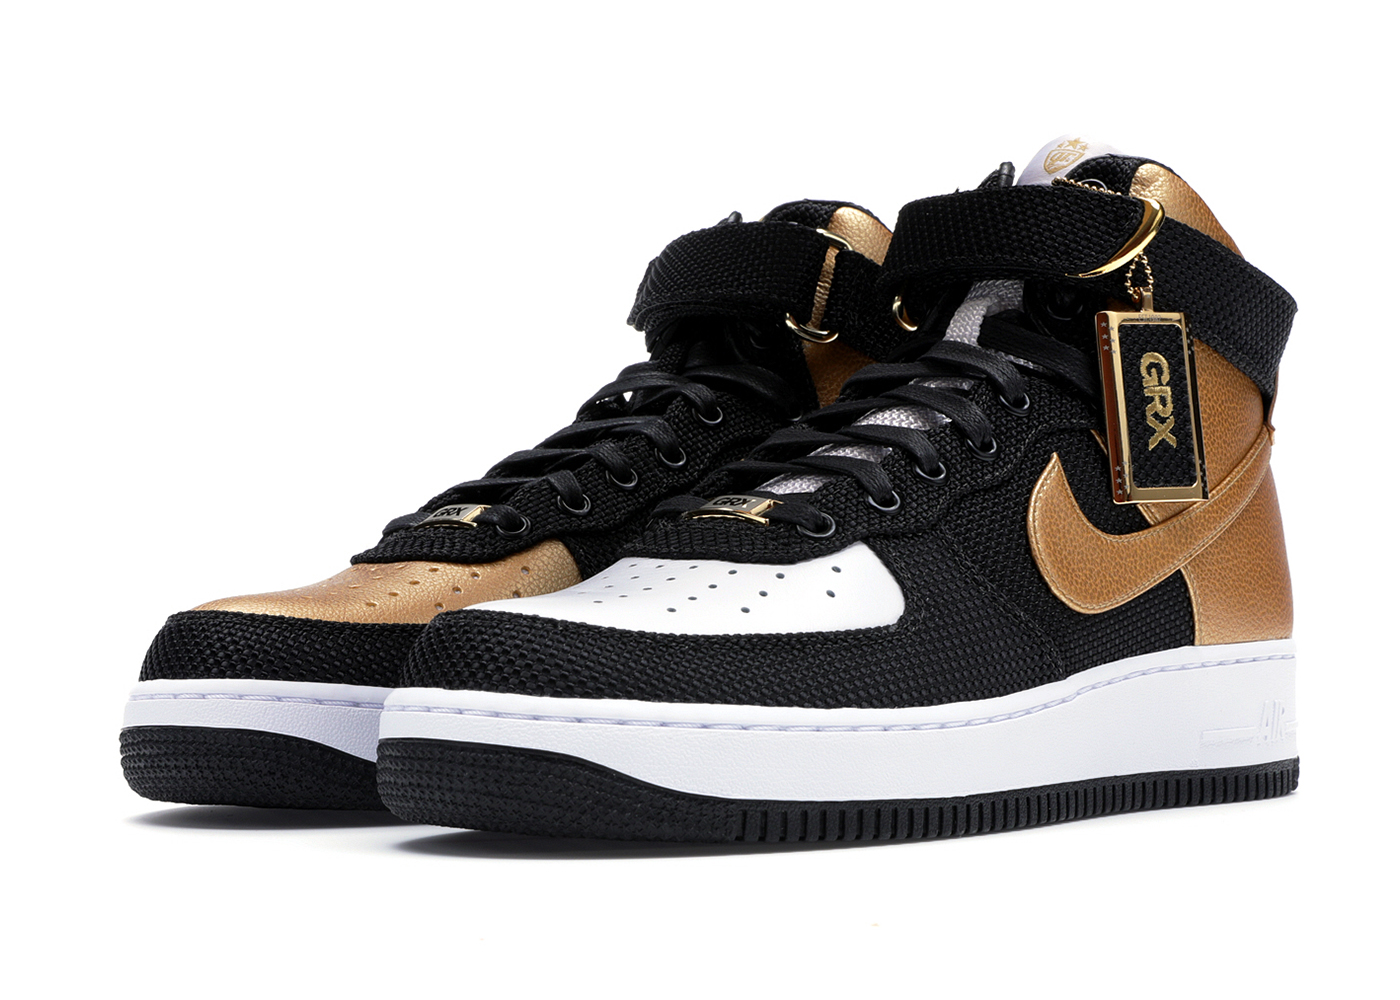 "official photos f7376 6cd94 Nike Bespoke iD Air Force 1 Highs ""goldRush Rally Top 10s"" ..."